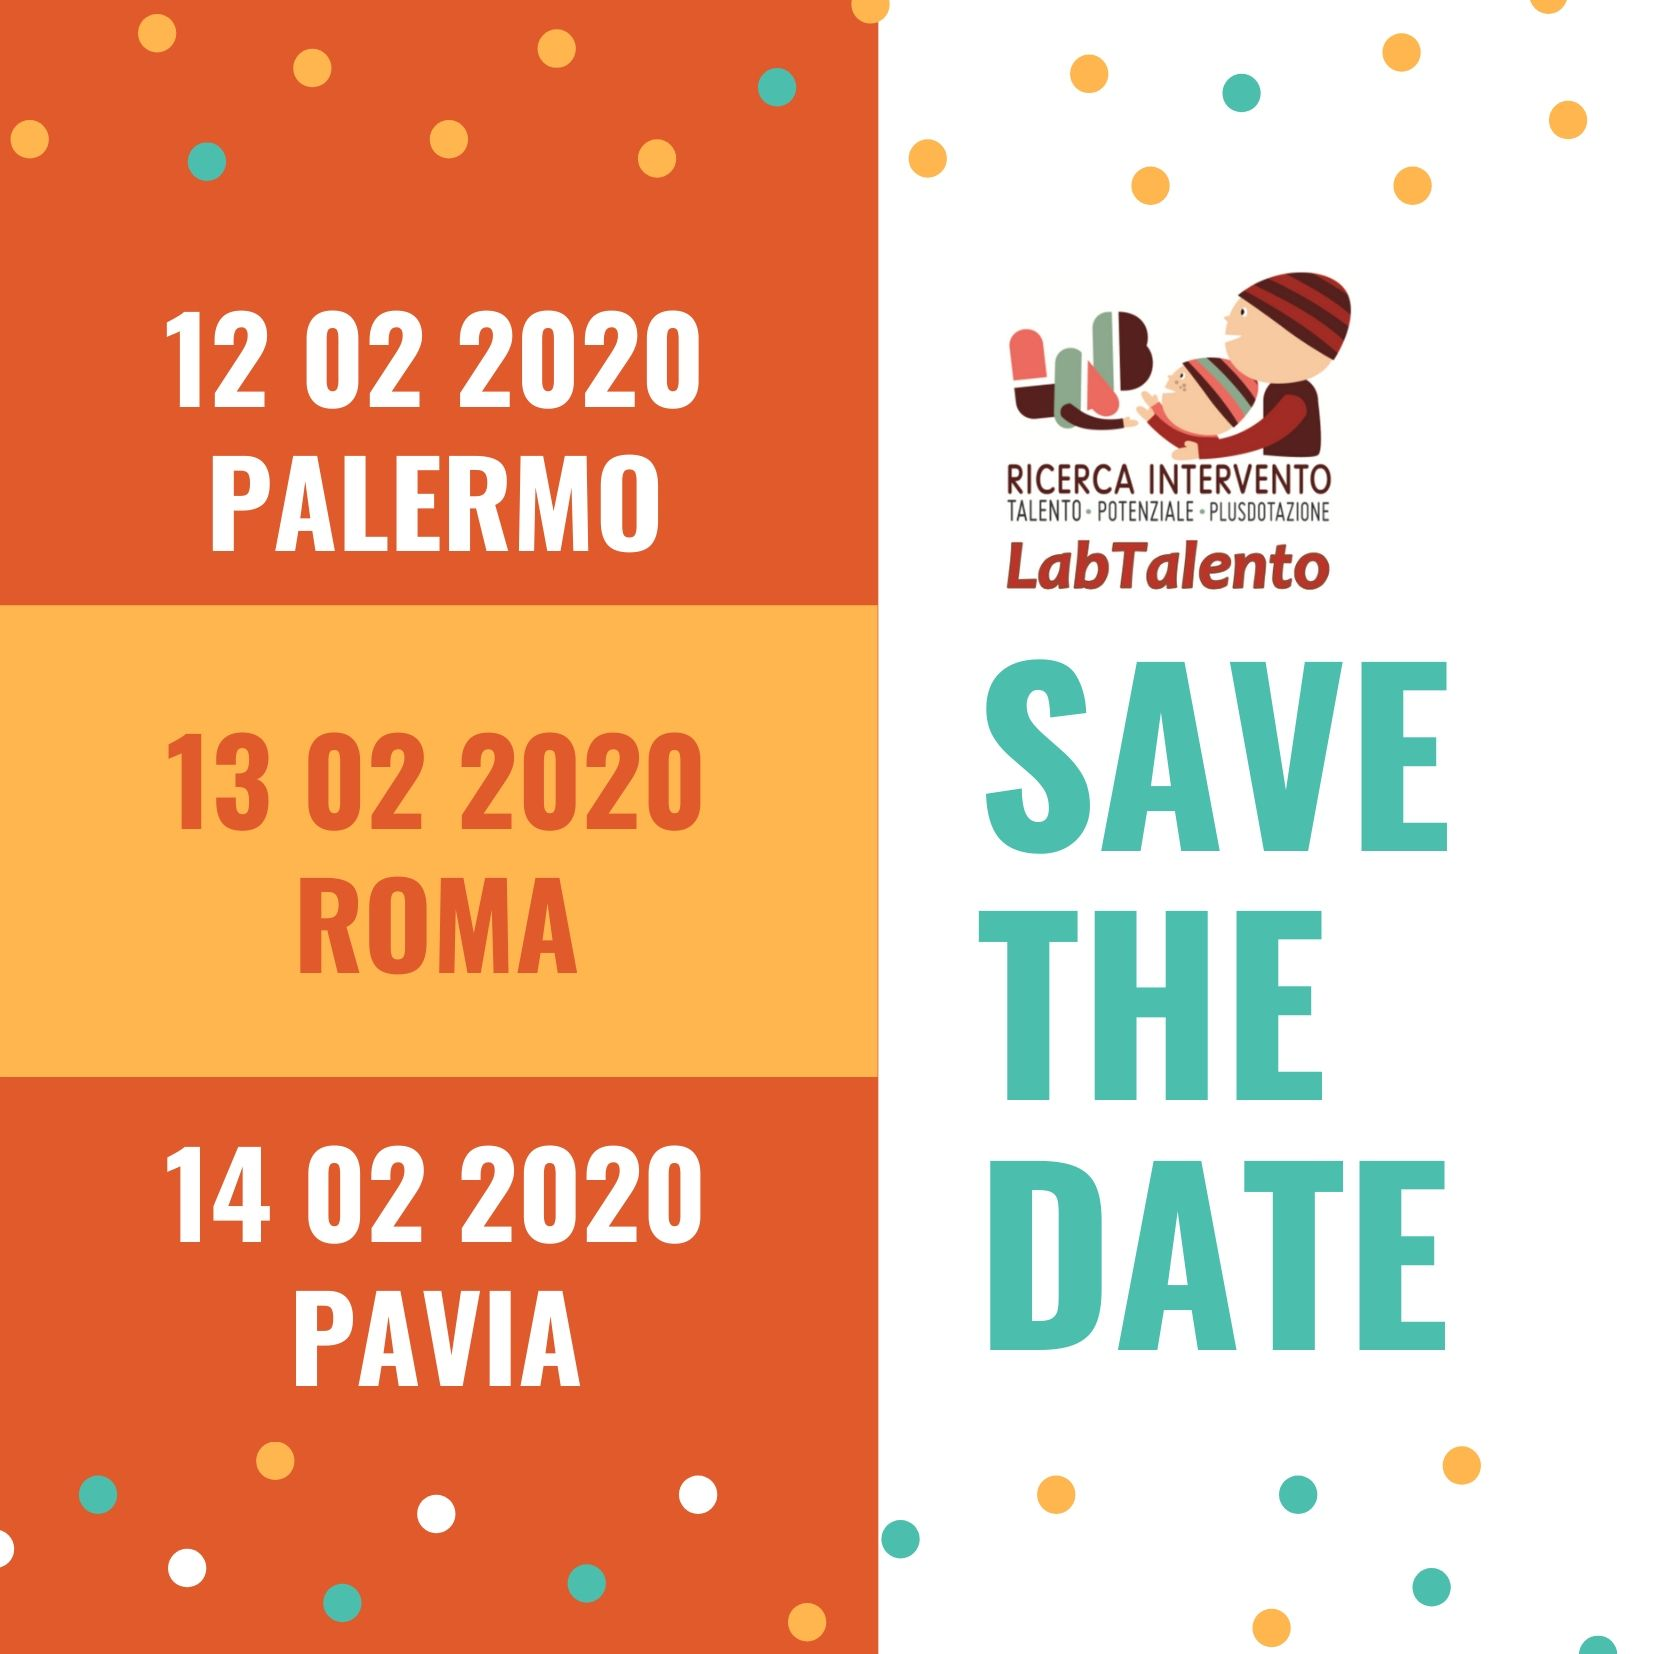 Save the date febbraio 2020